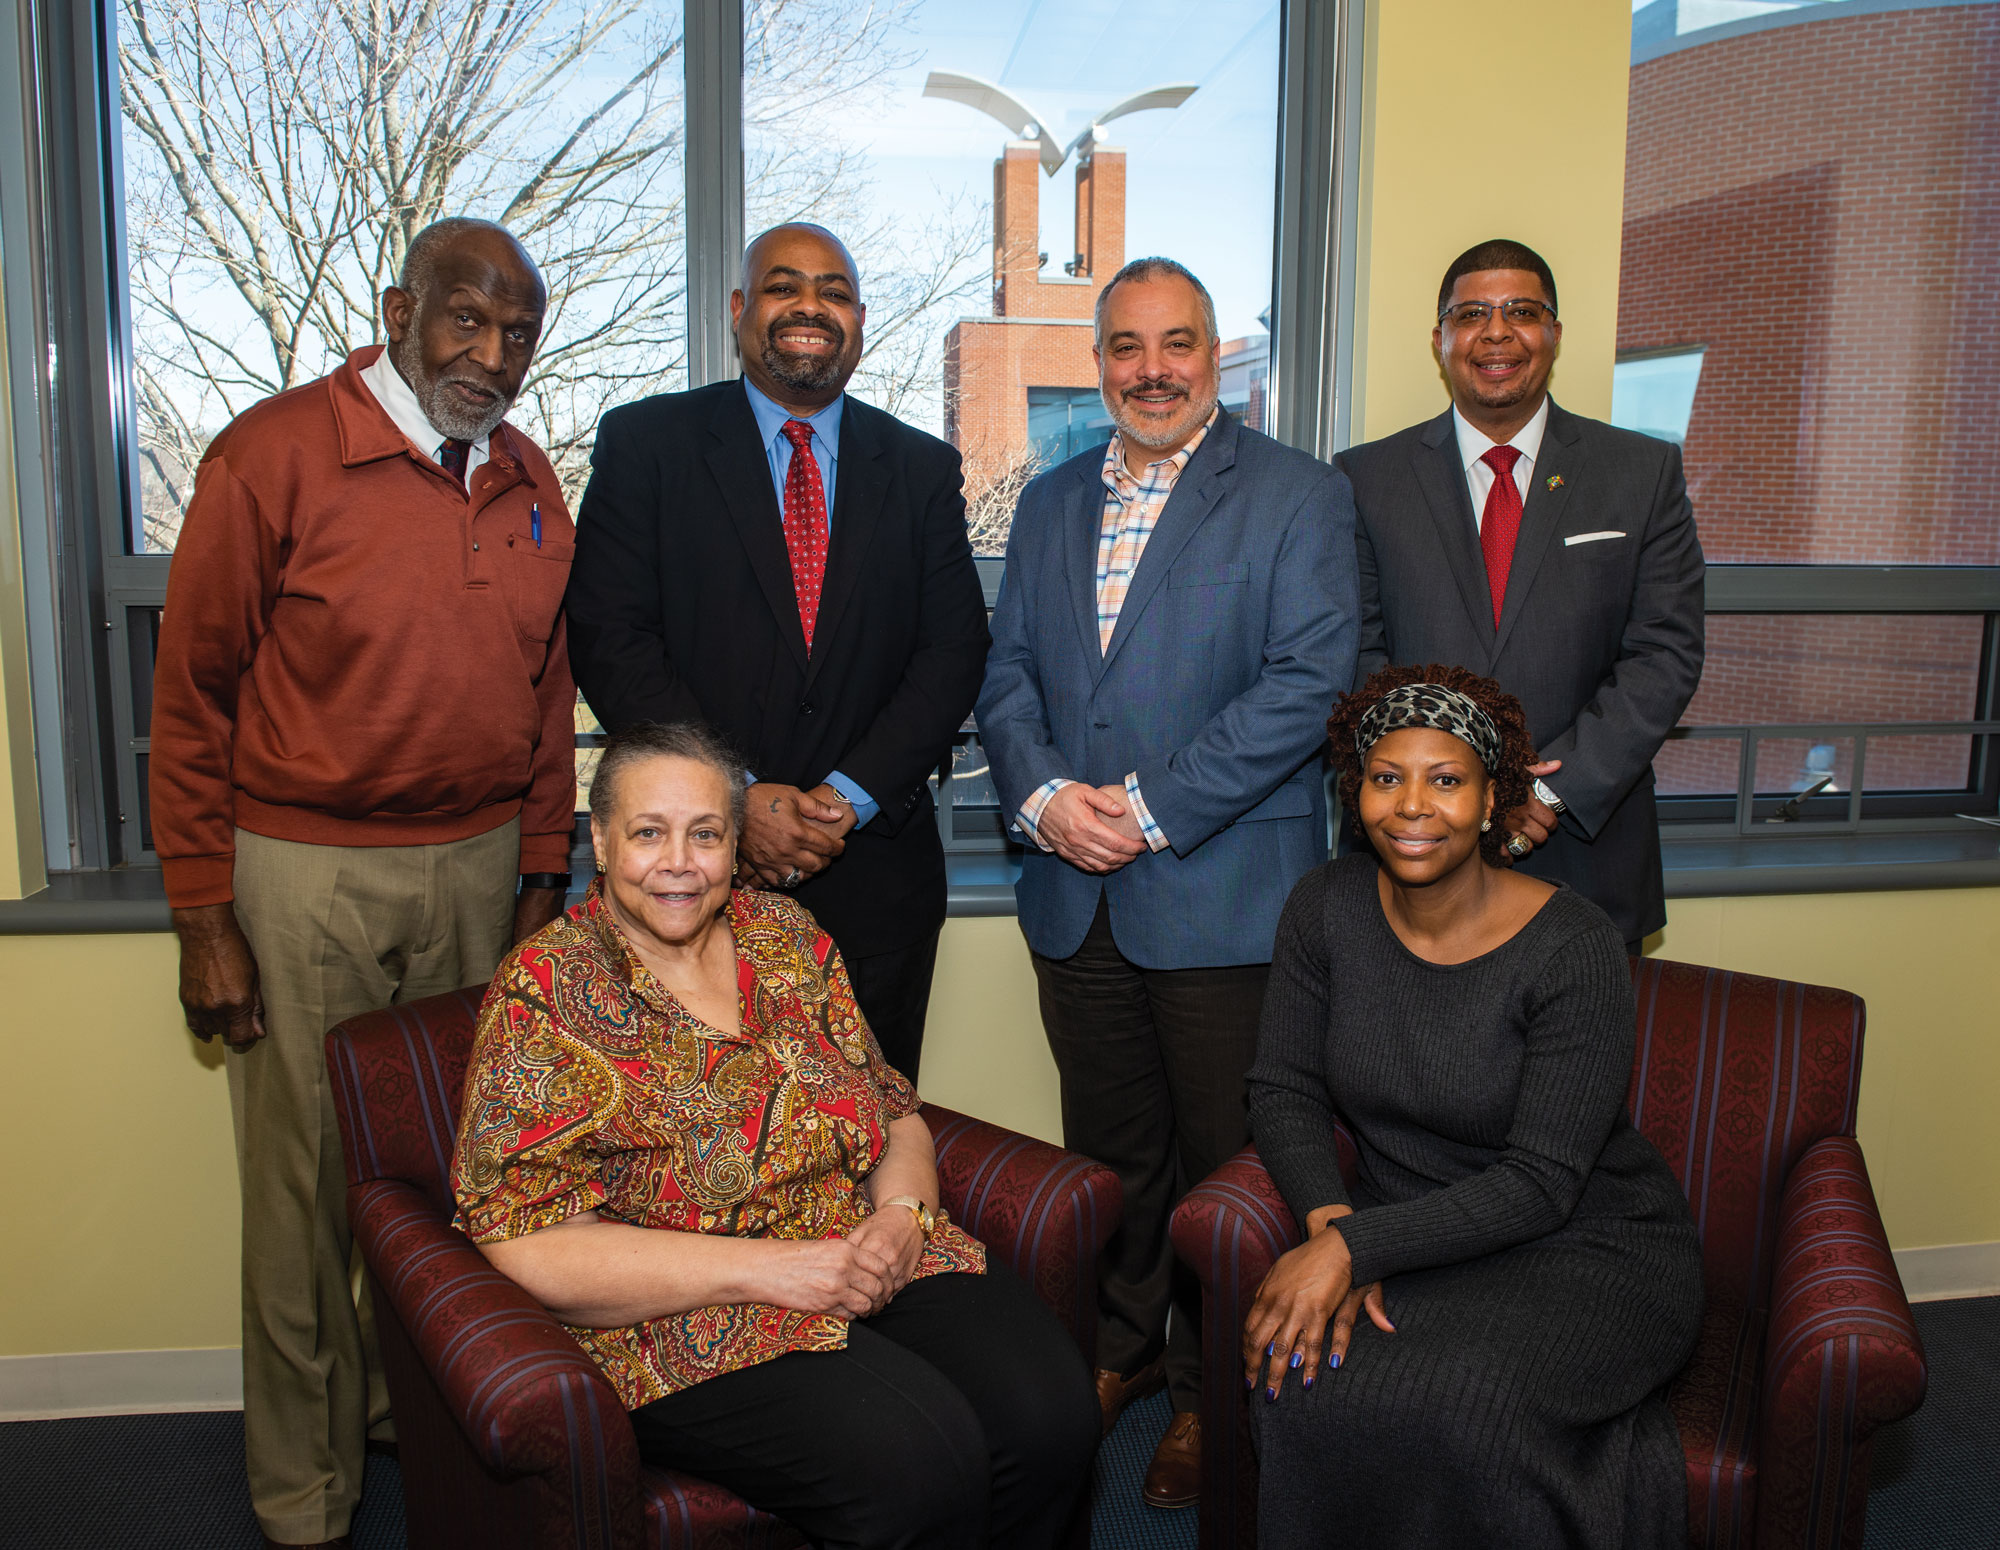 Several alumni of the Black Student Union (BSU) gather to formally establish the Barbara Matthews Endowed Scholarship, named in honor of the longtime adviser of the BSU. [Seated from left] Matthews and Michele Helms, '92, an ESL teacher. [Standing from left] James Barber, '64, M.S. '79, Southern's director of community engagement; Attorney Michael Jefferson, '86; President Joe Bertolino; and Kermit Carolina, '94, M.S. '03, supervisor of youth development and engagement with New Haven Public Schools.